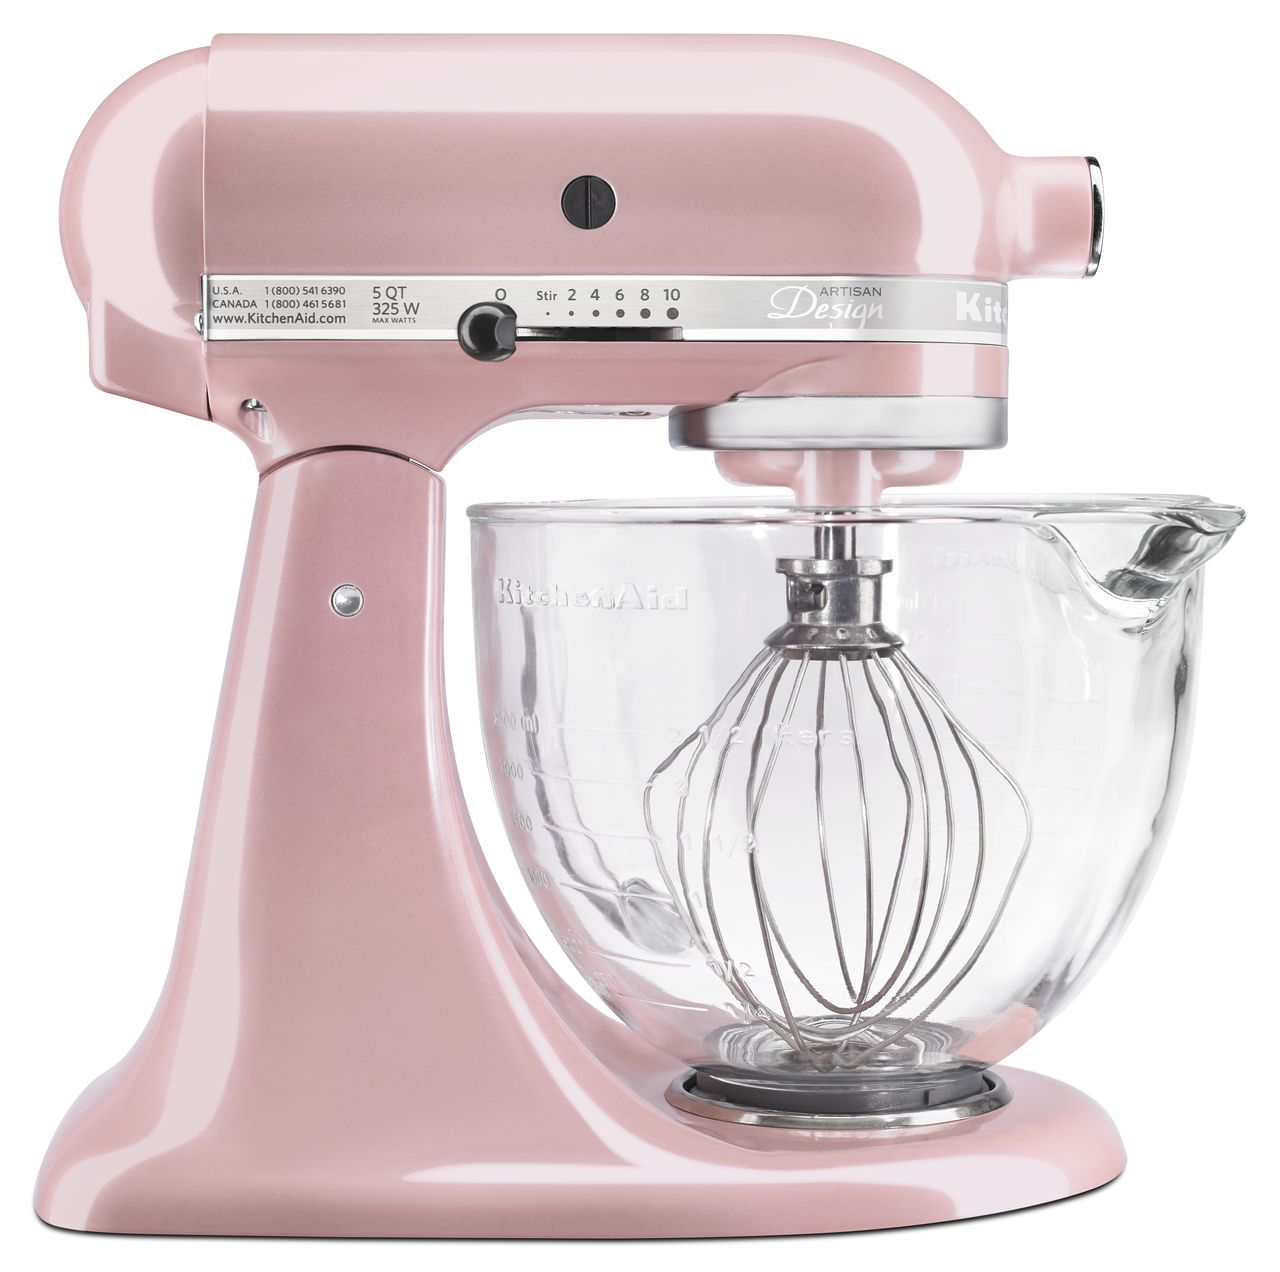 KitchenAid Artisan Design Series 5 Quart Tilt-Head Stand Mixer with Glass Bowl, Starry Night (KSM155GBSN)